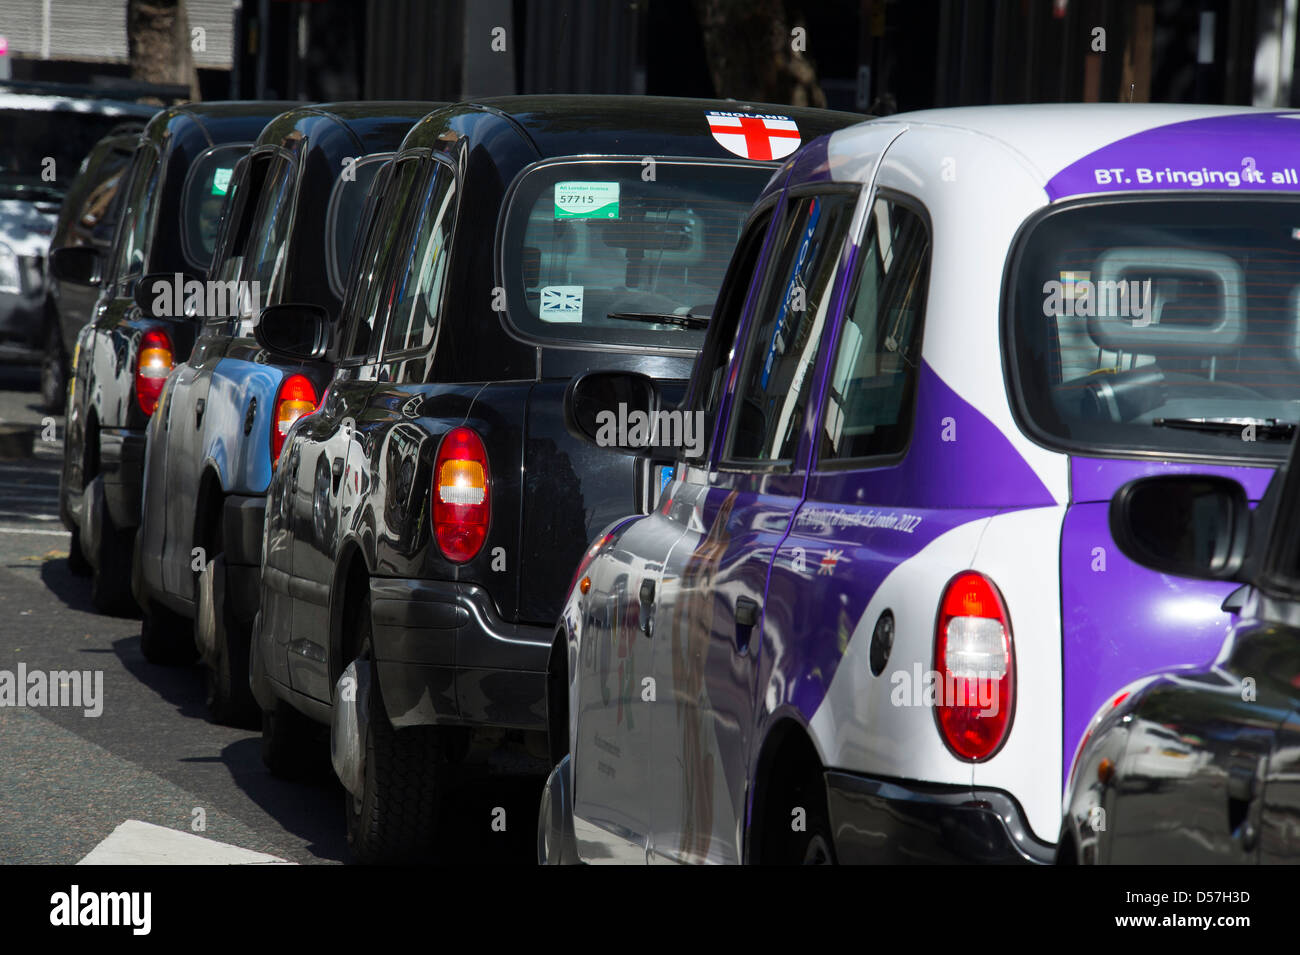 Row of black taxi cabs in the city of London, England. - Stock Image